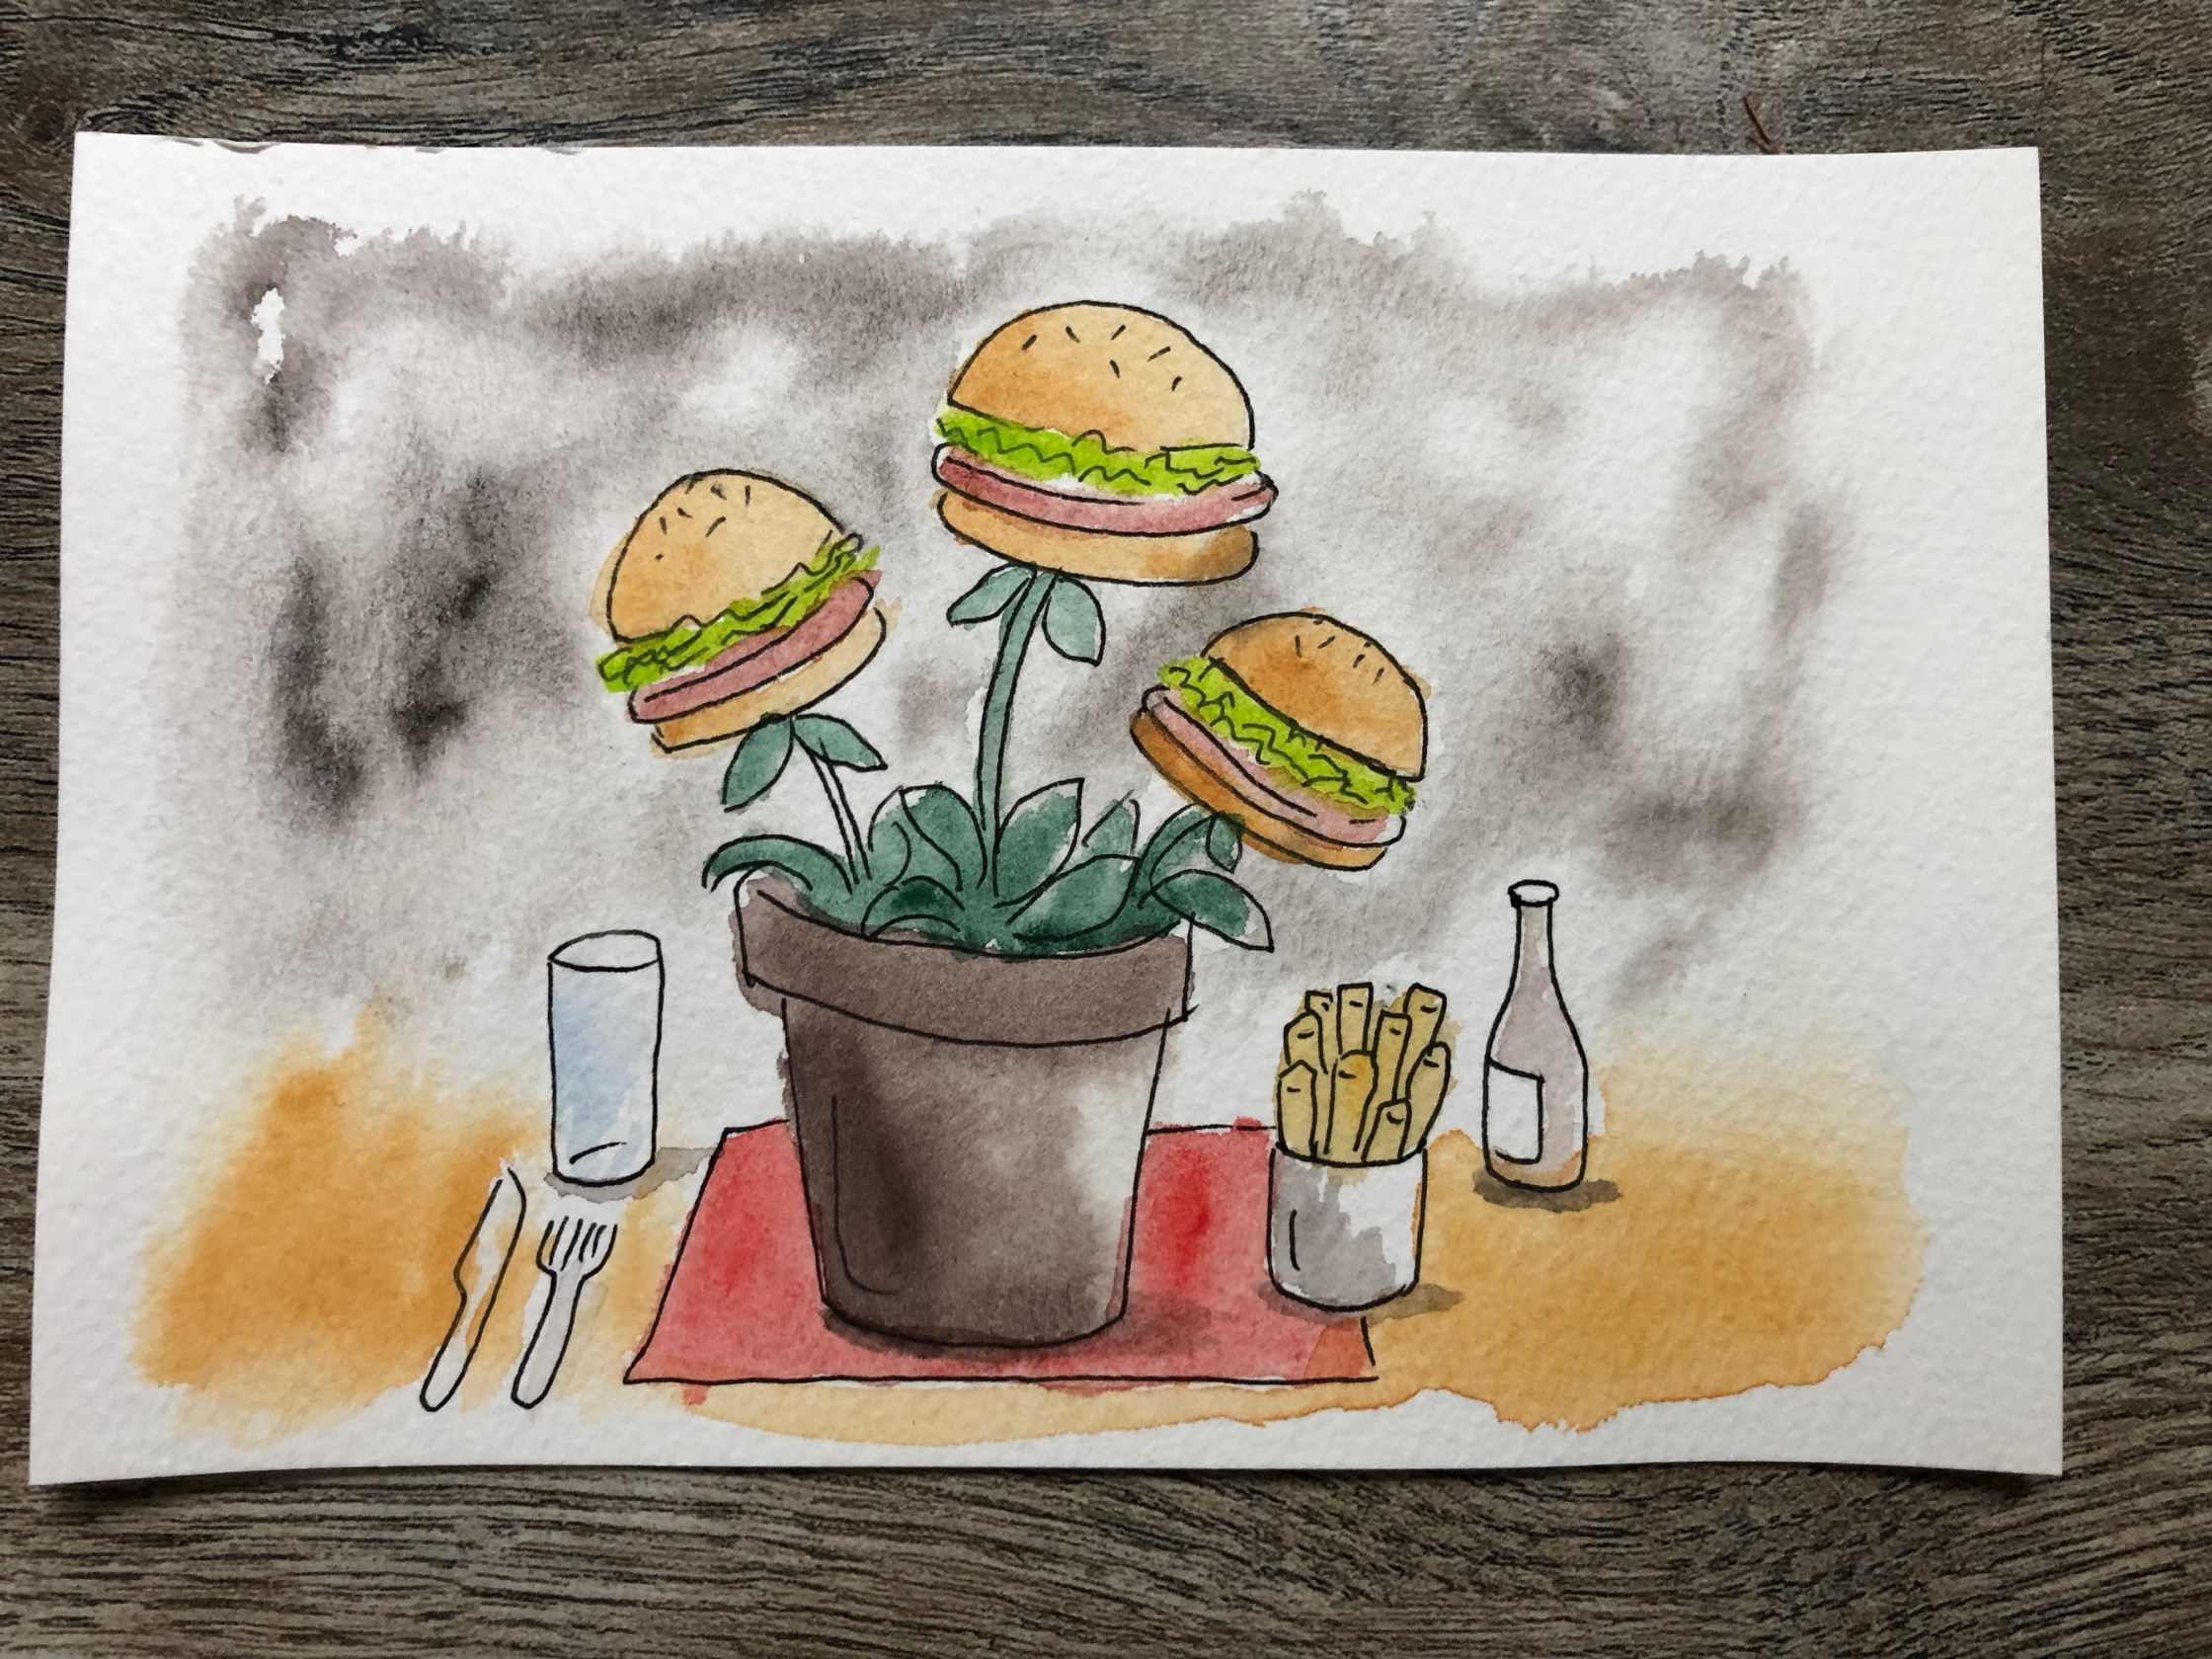 Watercolor painting of a plant pot with burgers in it.